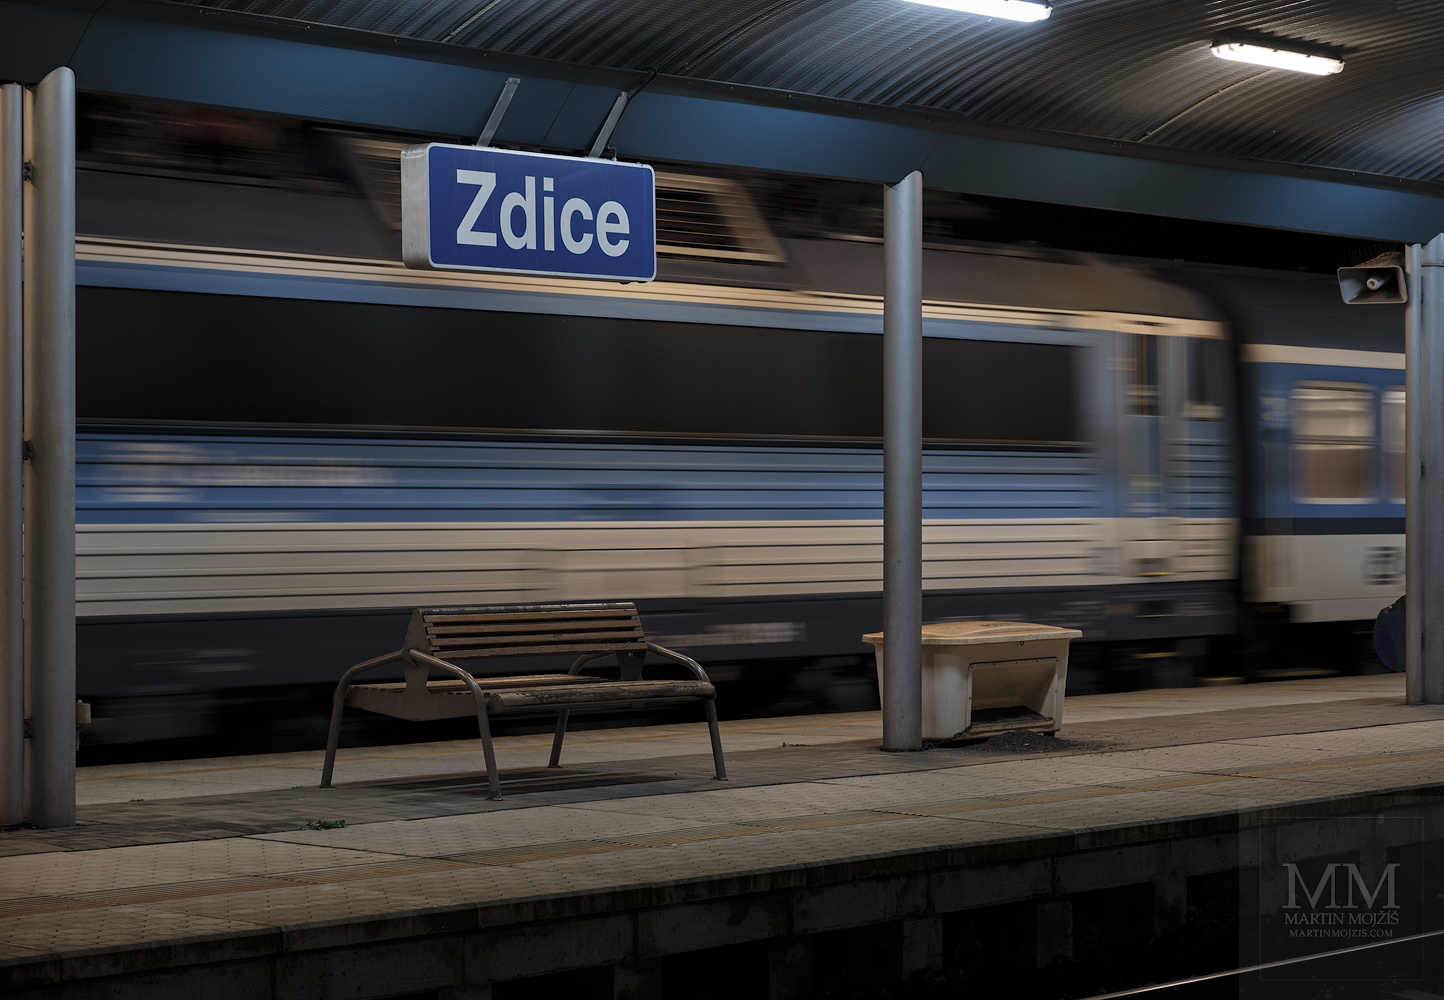 Railway station Zdice after two years - part 2.